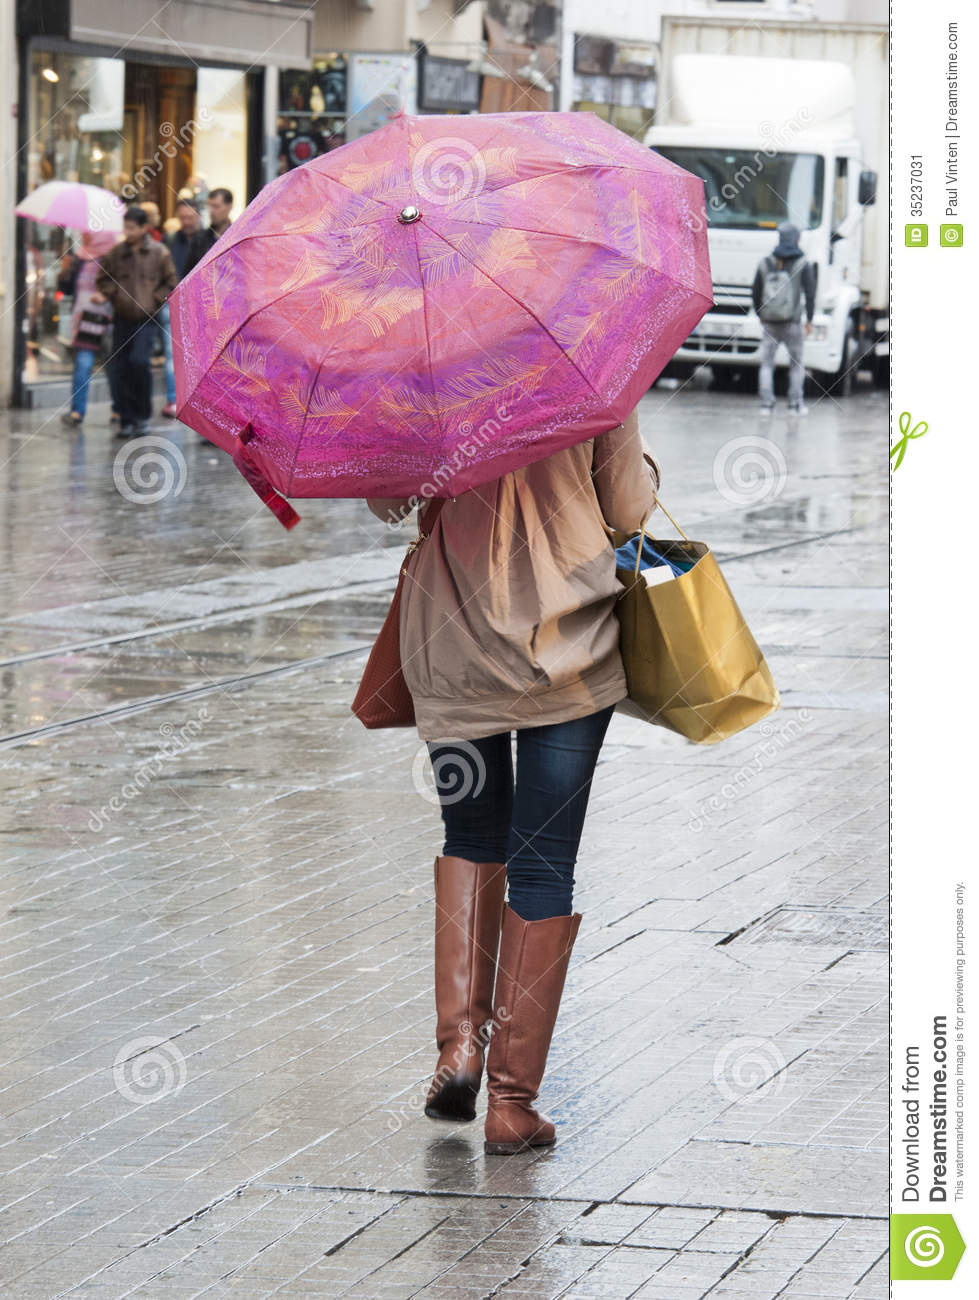 Woman With Umbrella Walking Down Street Stock Image ...